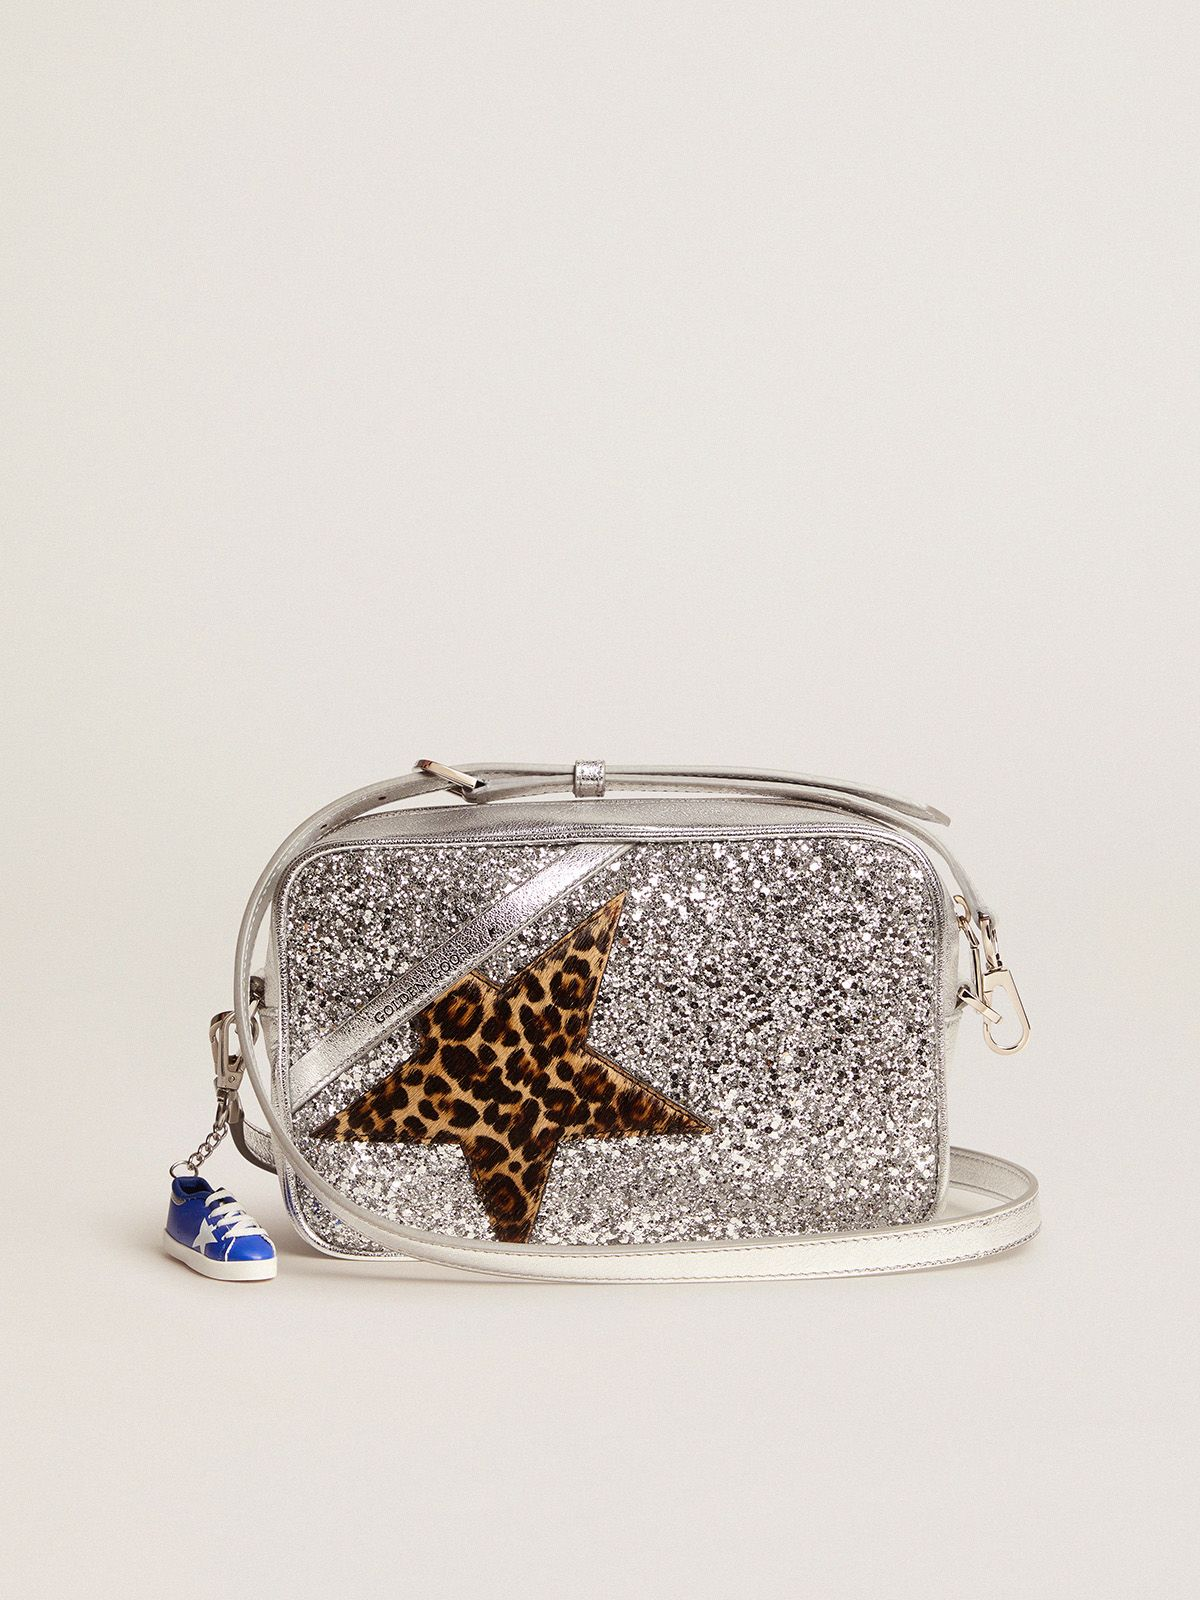 Star Bag in laminated leather with silver glitter and star in leopard-print pony skin.